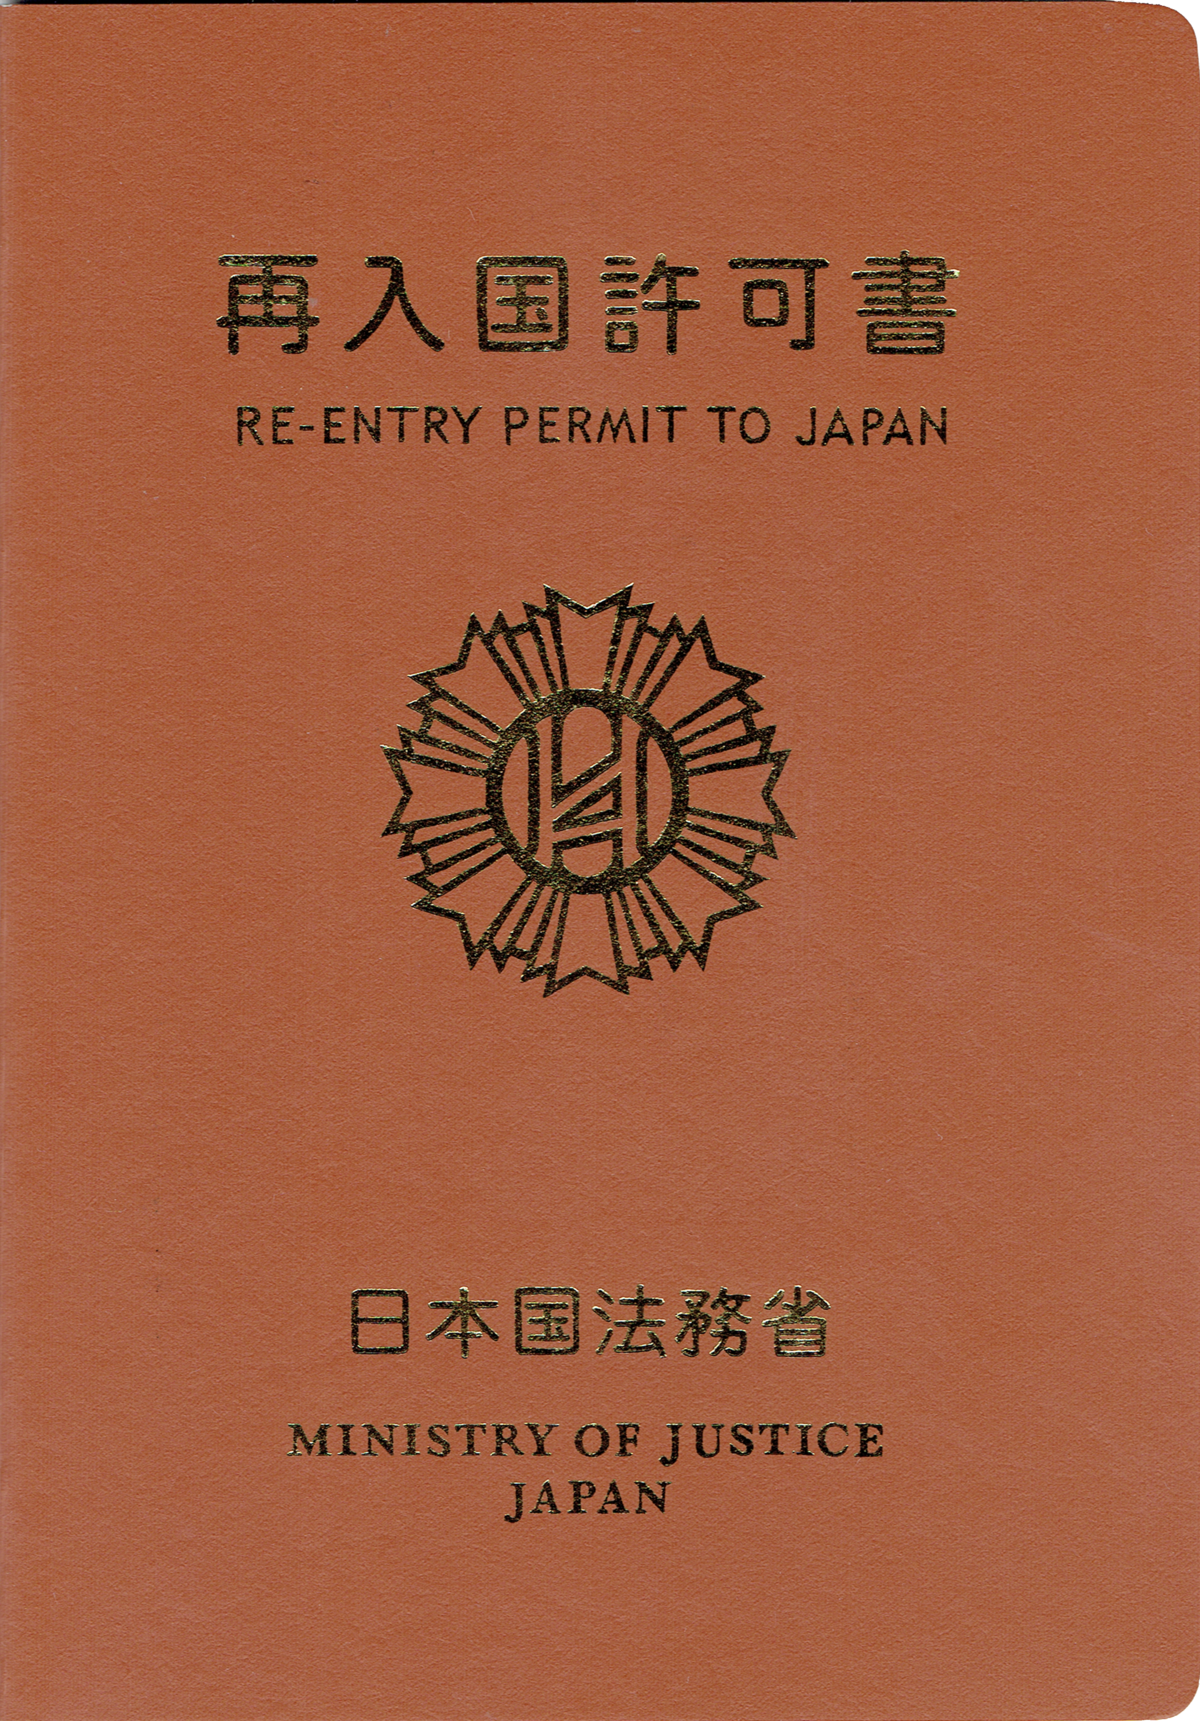 japan re-entry permit